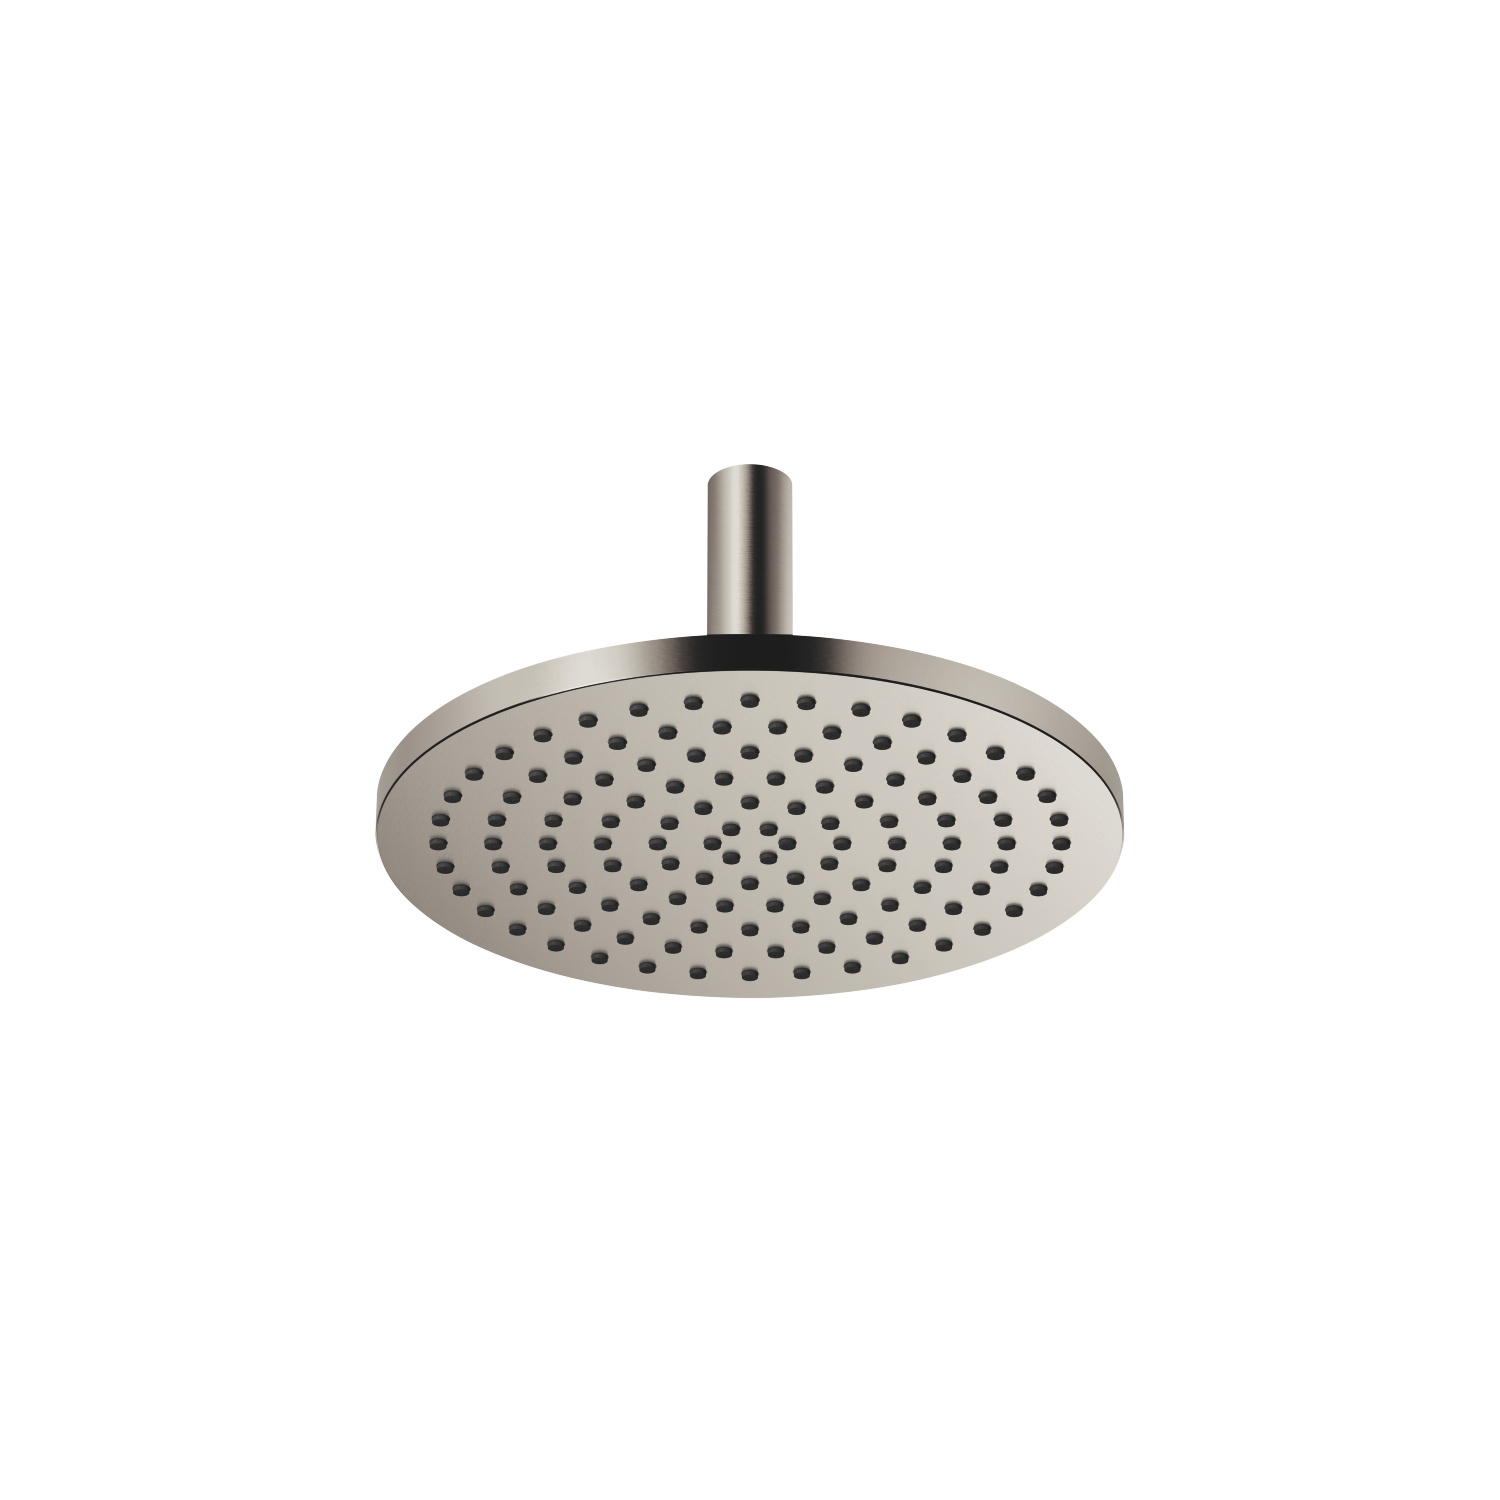 Rain shower ceiling-mounted - platinum matte